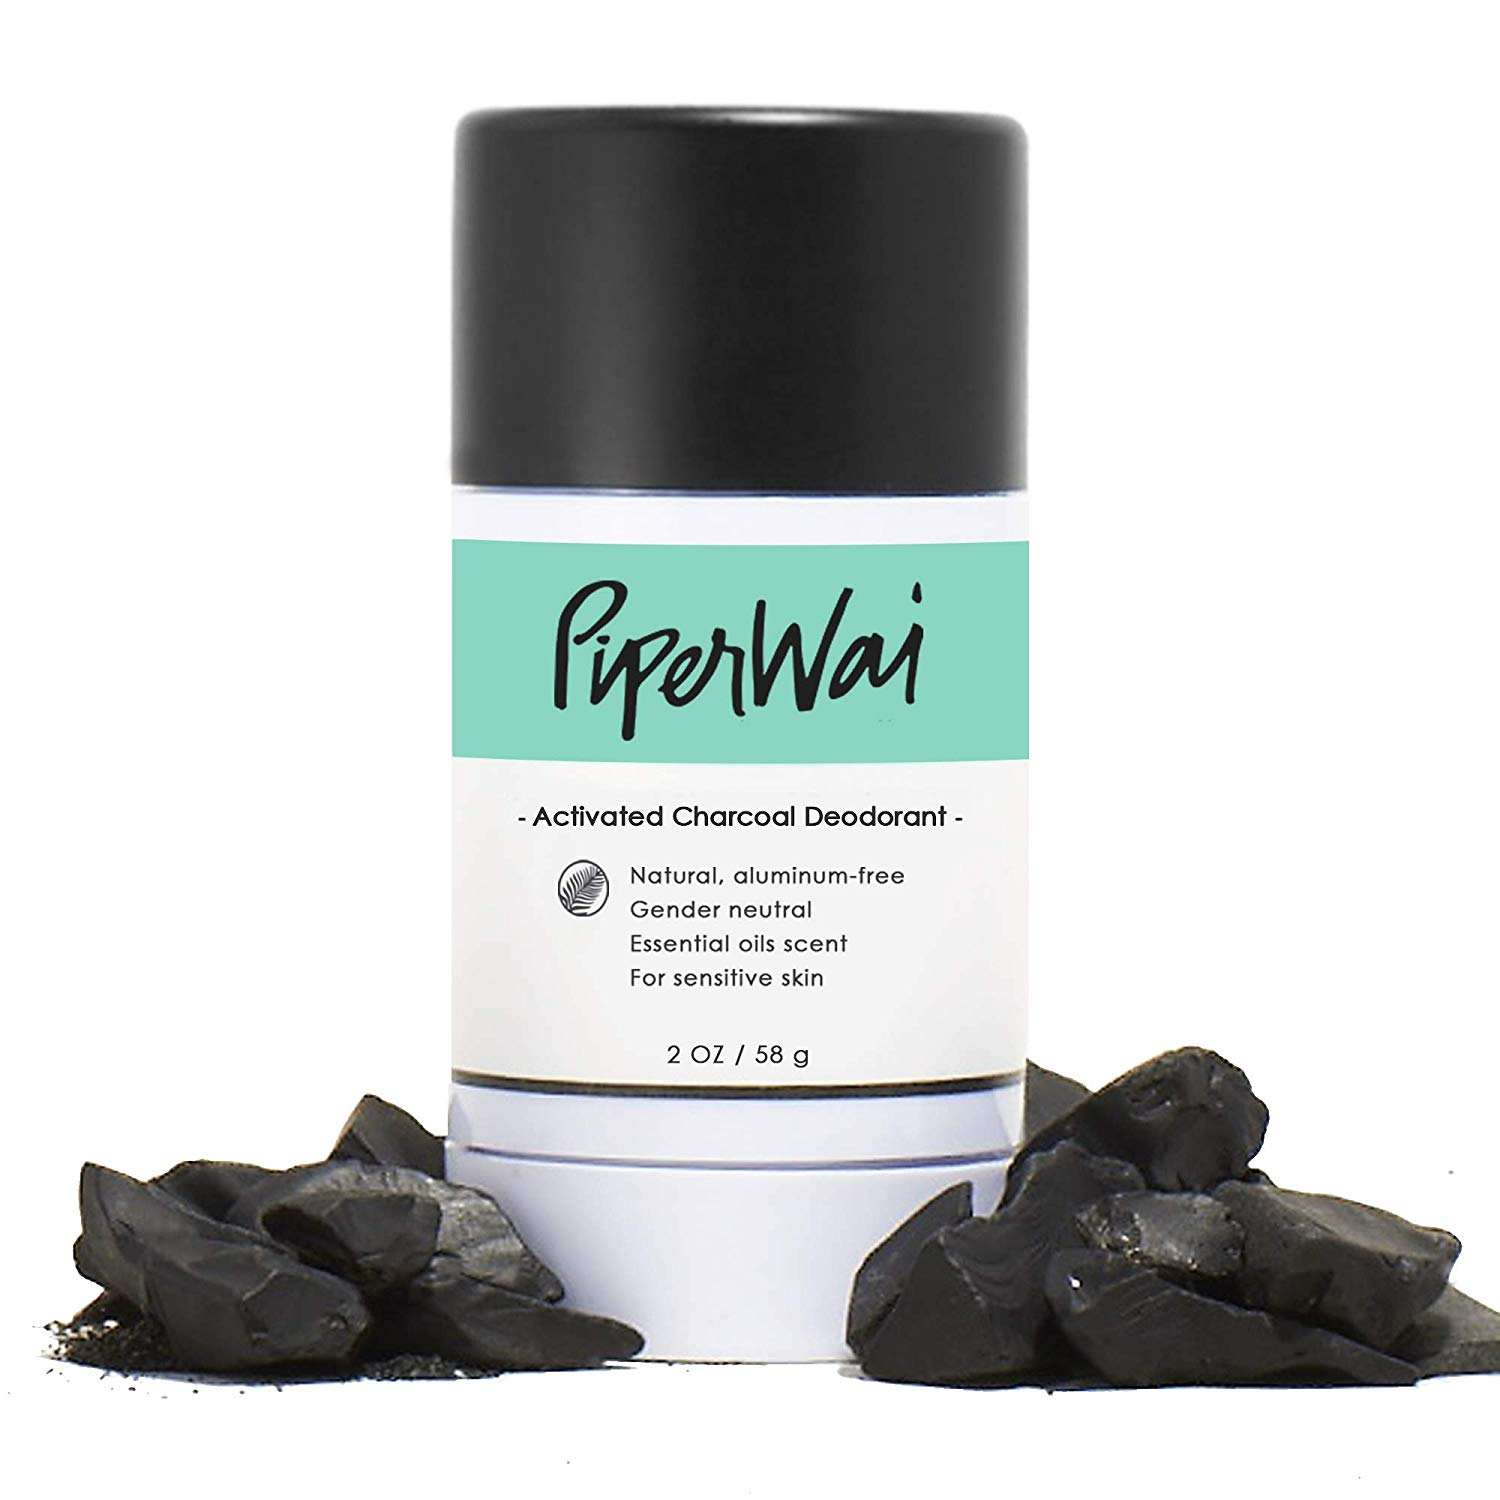 best all natural deodorant review piperwai